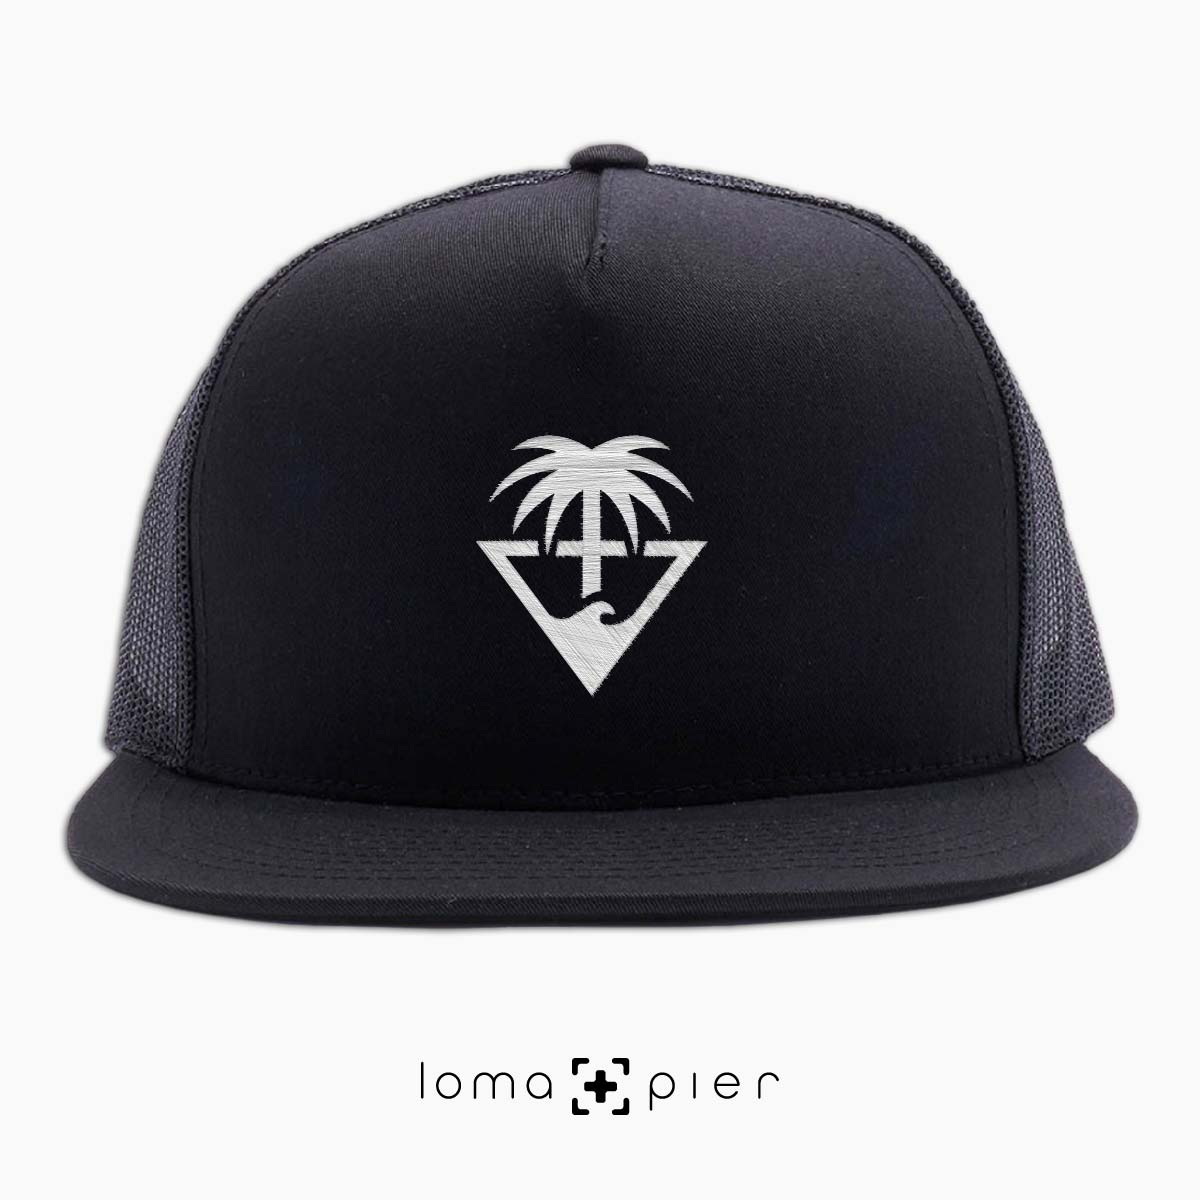 netback cap with OCEAN PALM TREE icon by loma and pier hat shop